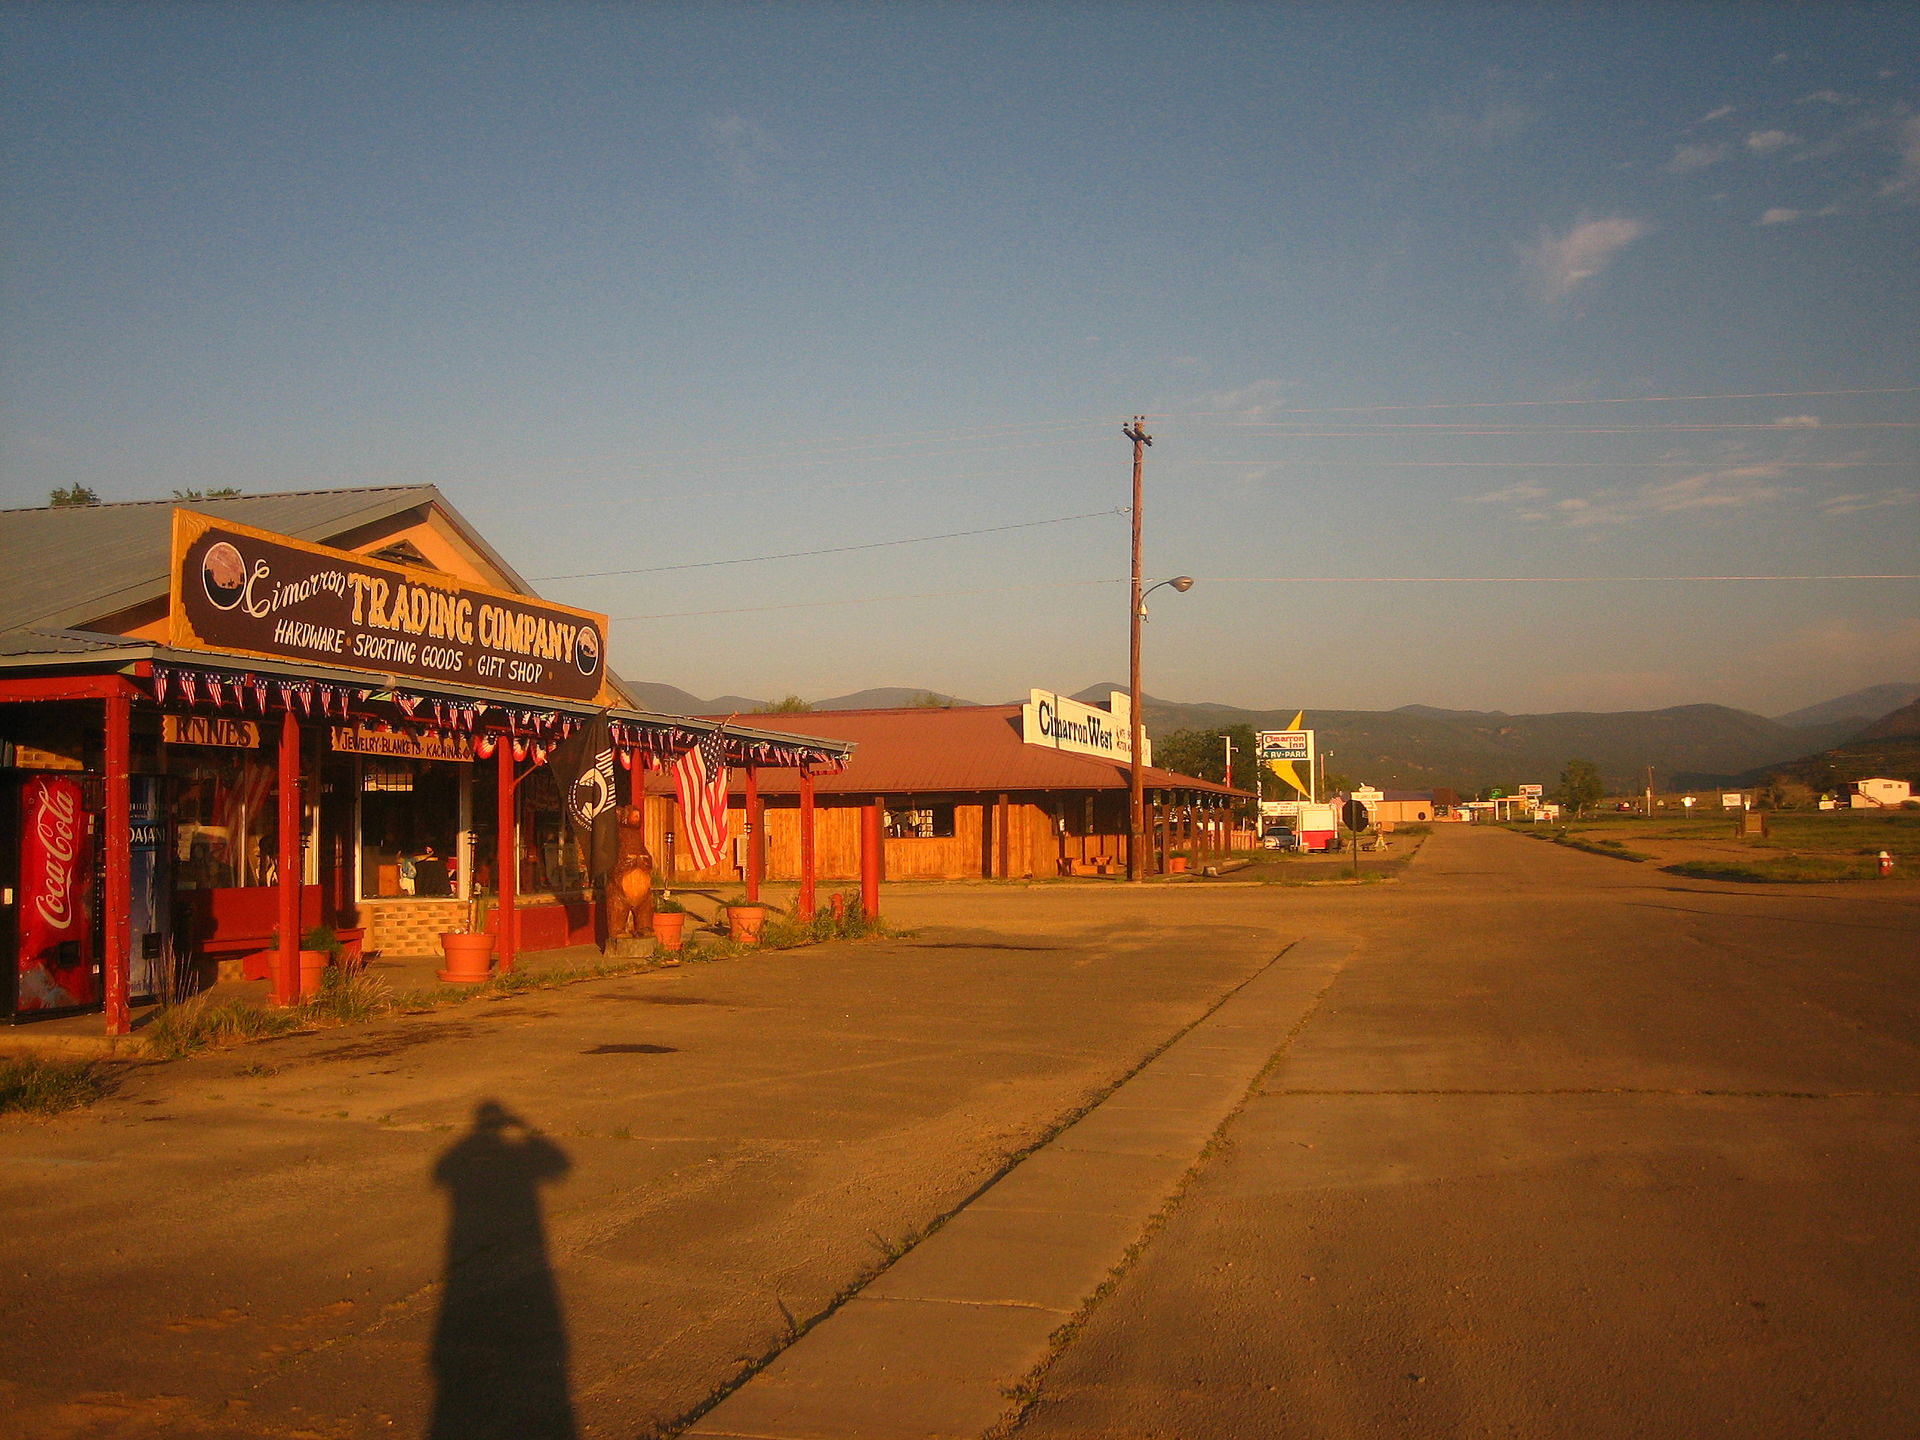 Downtown Cimmaron, New Mexico